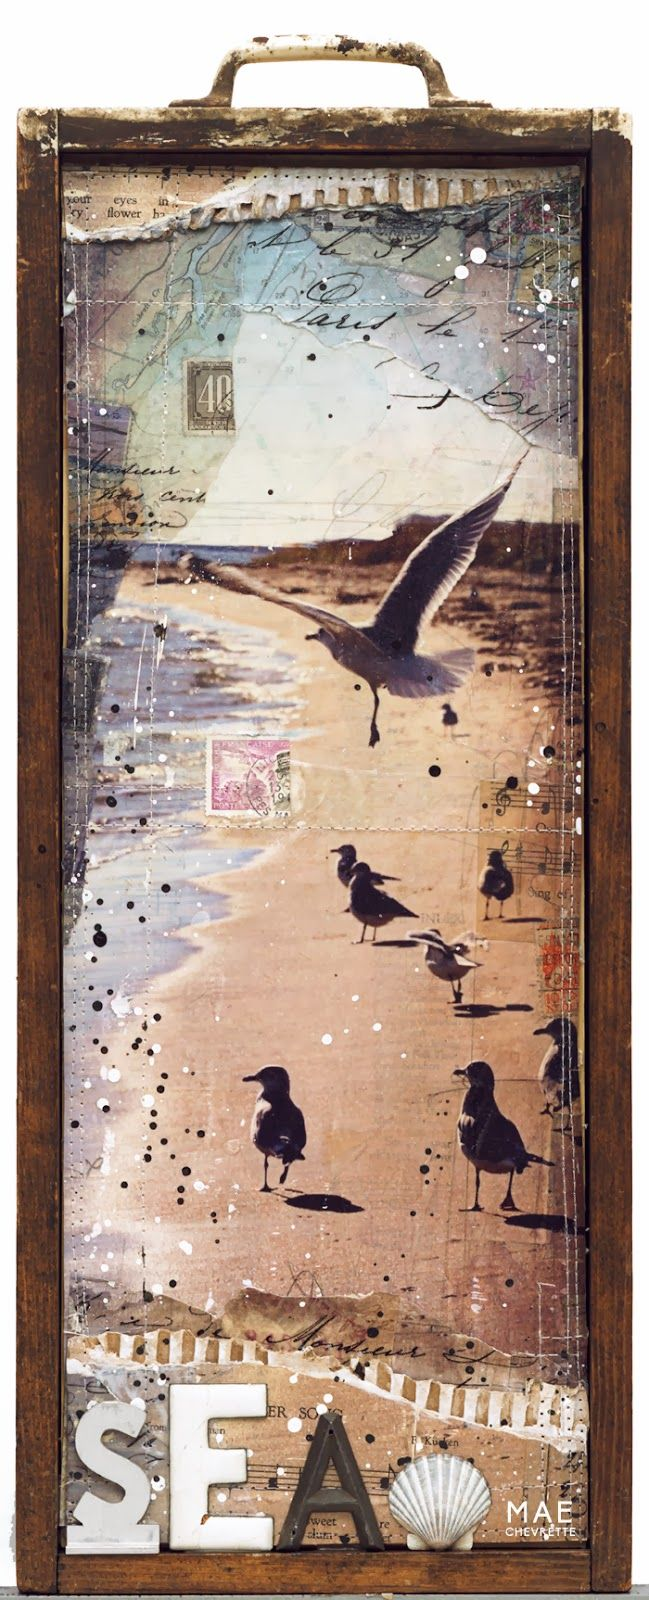 "Winter Birds No. 1 & No. 28""x18"" original mixed media inside antique whitewashed drawers - by Mae Chevrette"